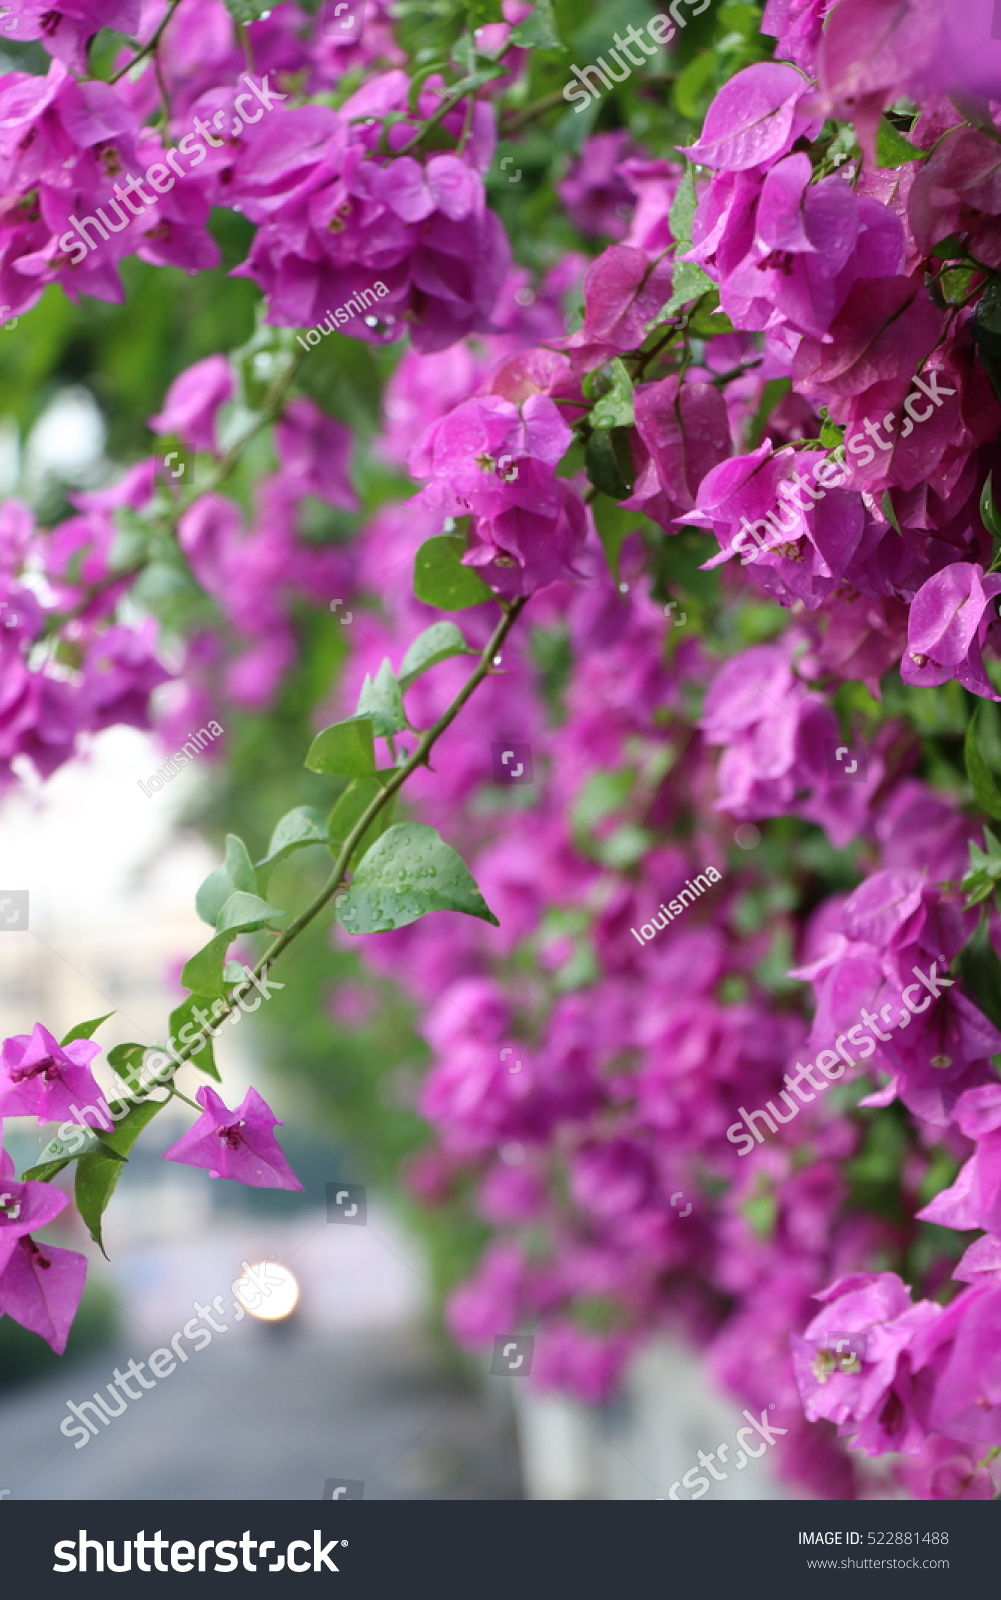 Bougainvillea Beautiful Flowers With The Raindrops Near The Street